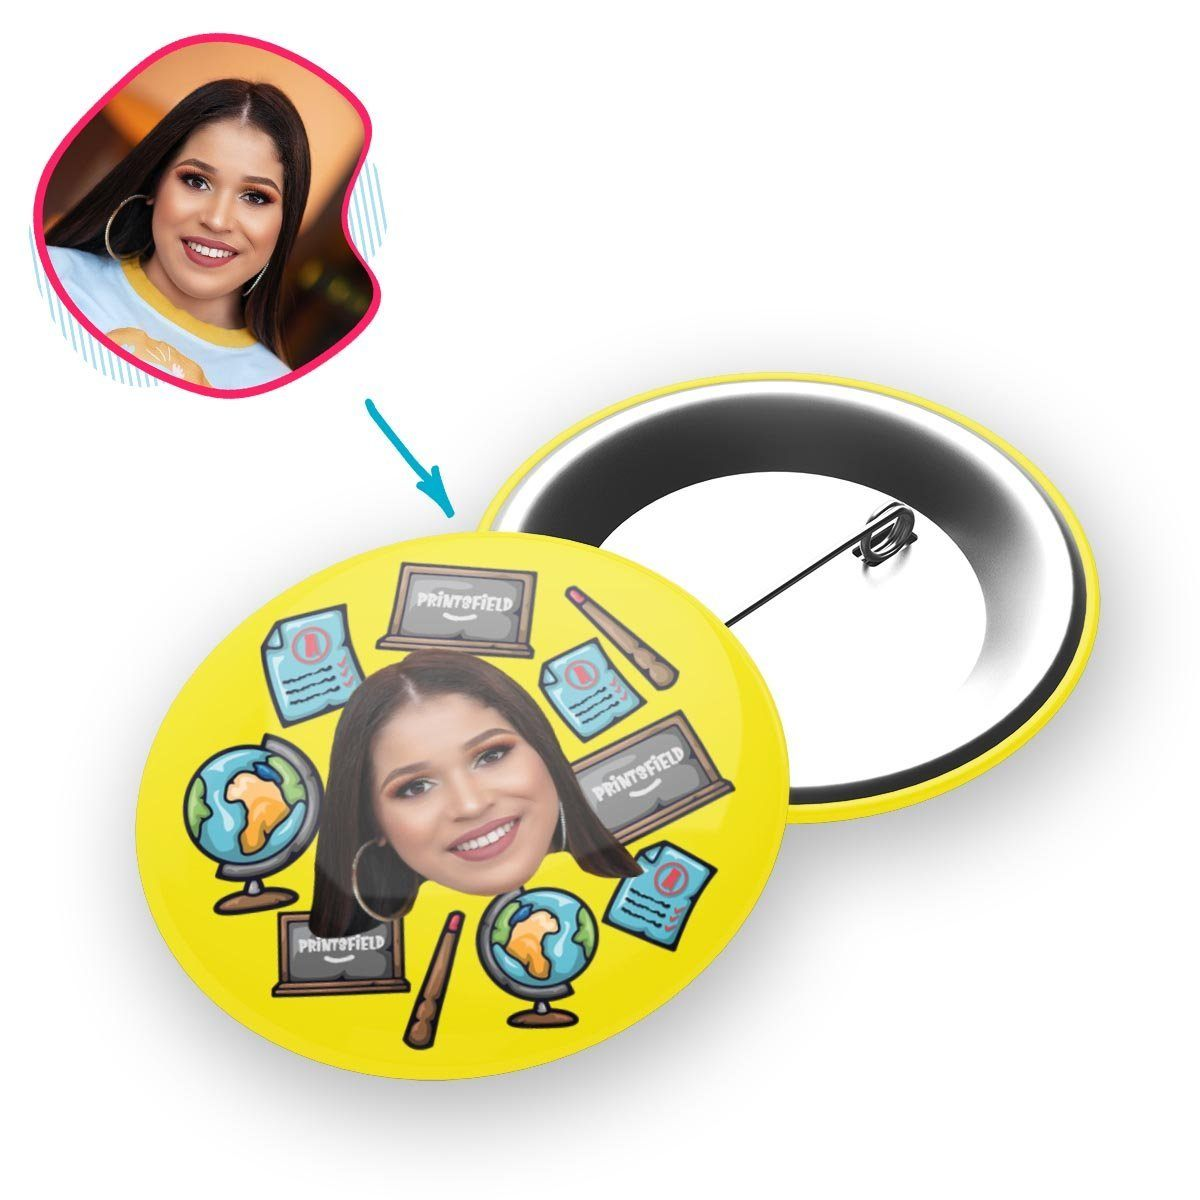 Yellow Teacher personalized pin with photo of face printed on it